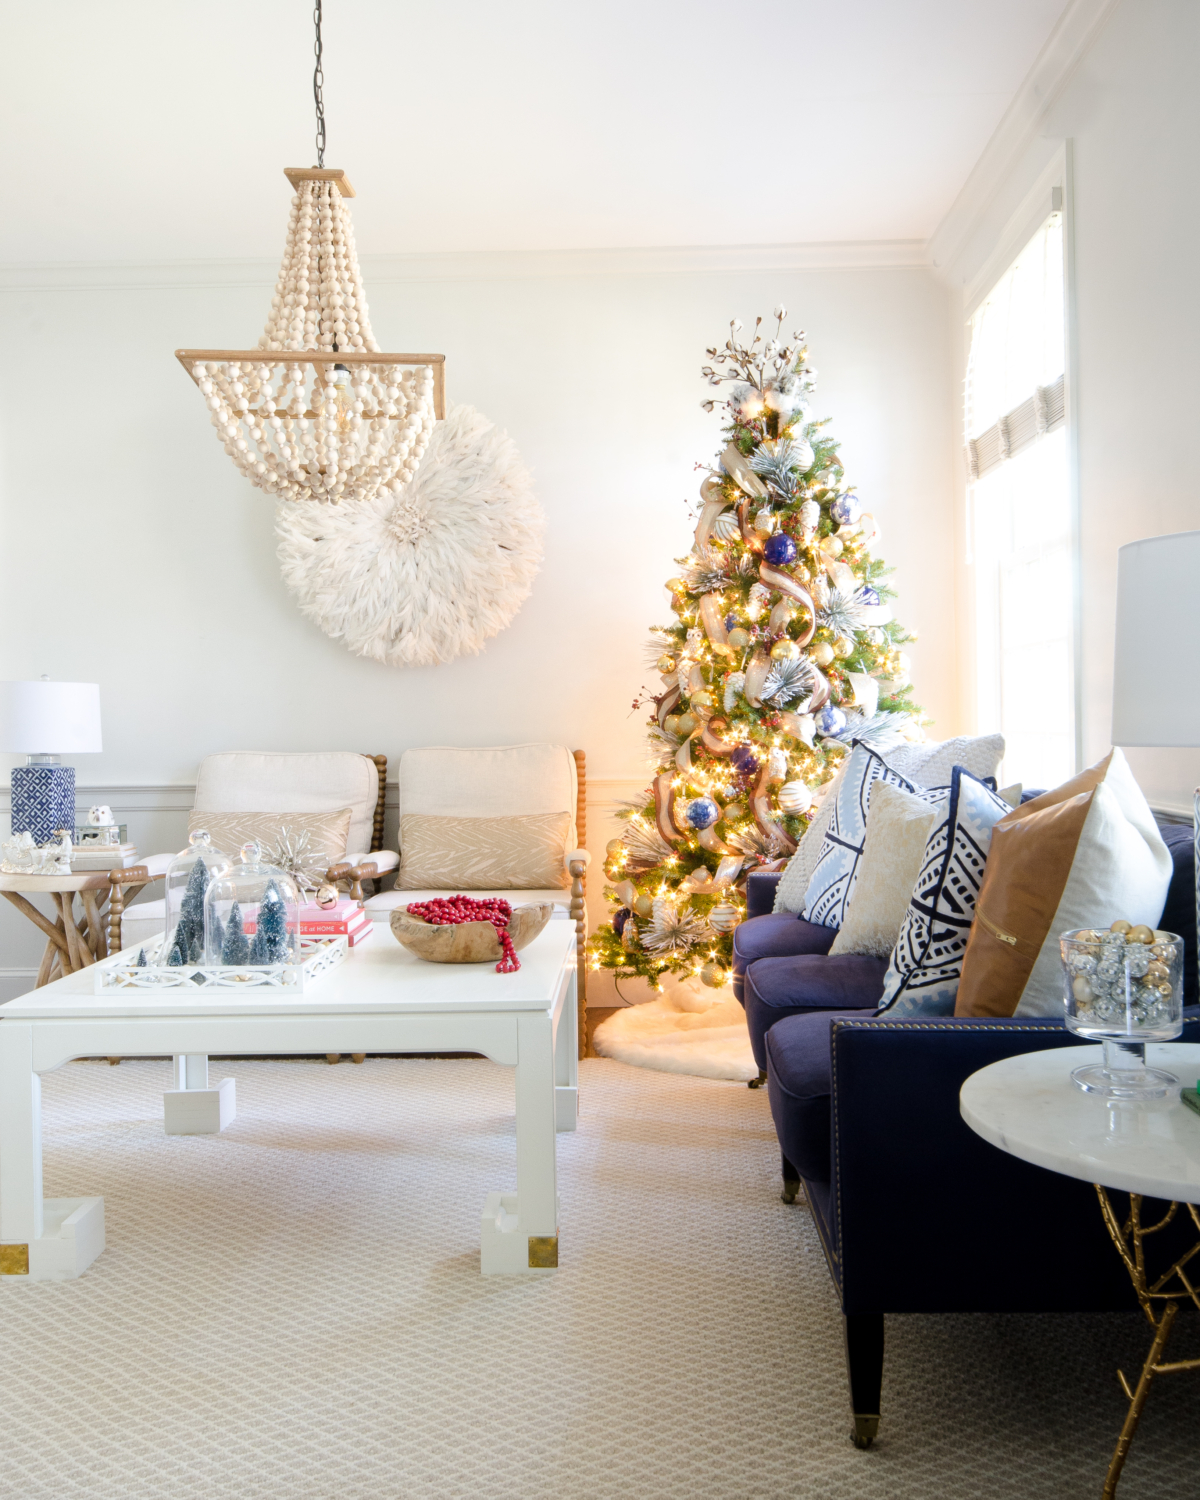 Magical Christmas living room with whites, neutrals, and blues.